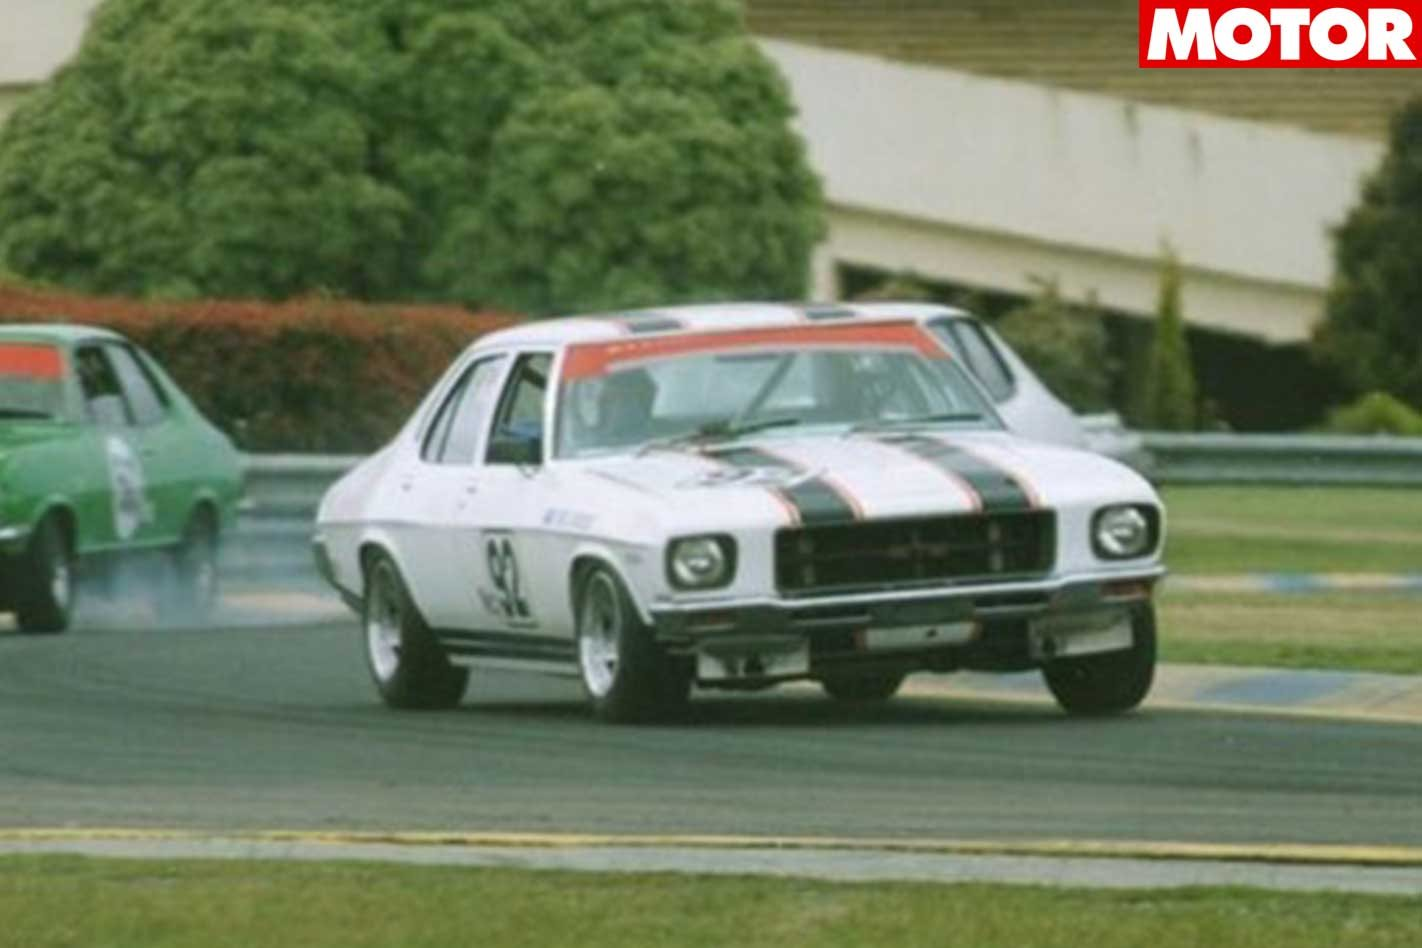 Hq Holden Race Car For Sale